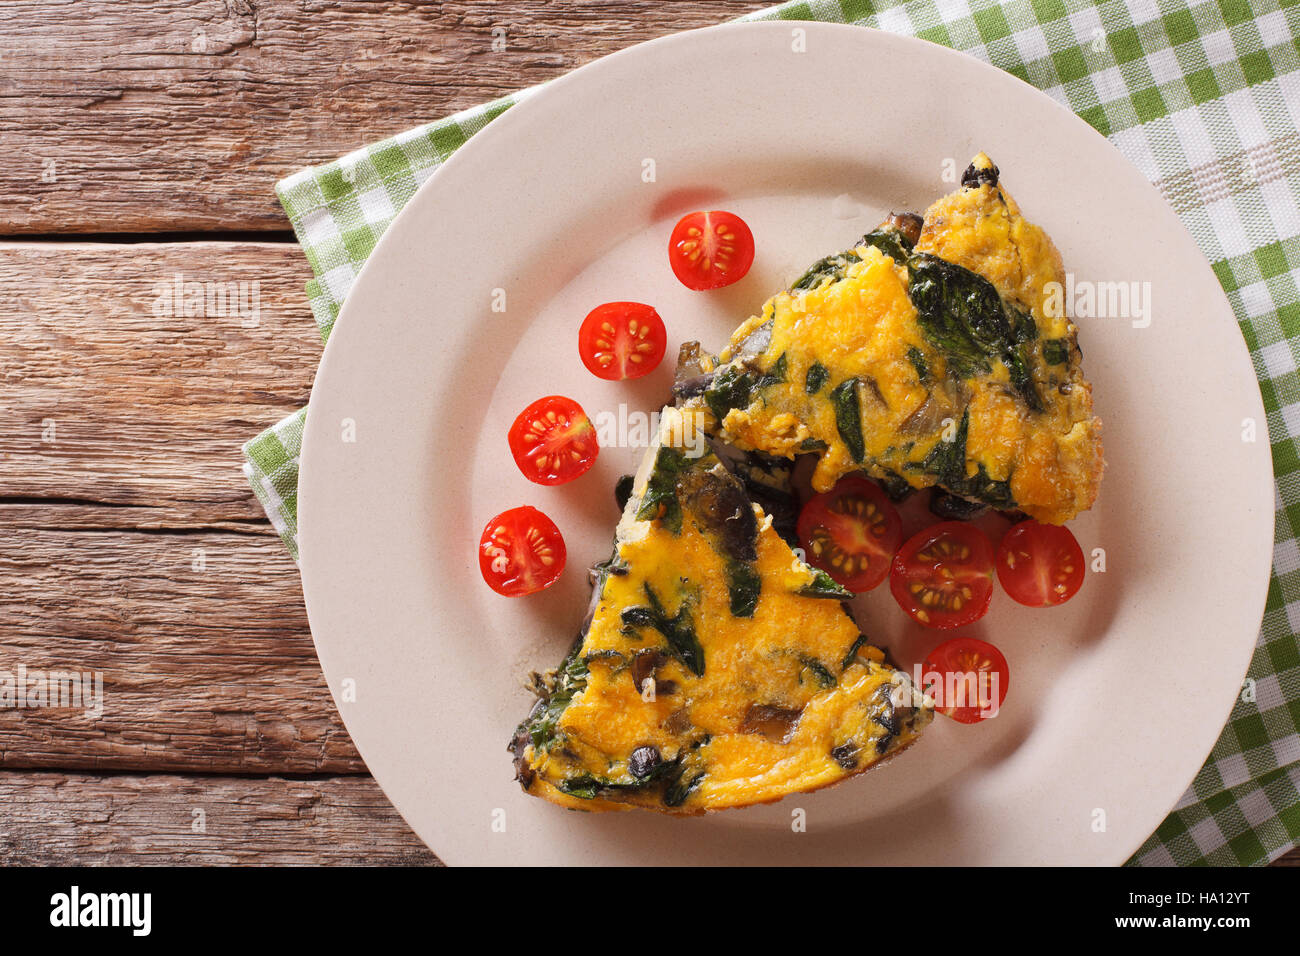 sliced frittata with spinach, cheddar cheese and mushrooms on a plate on a table close-up. Horizontal view from - Stock Image